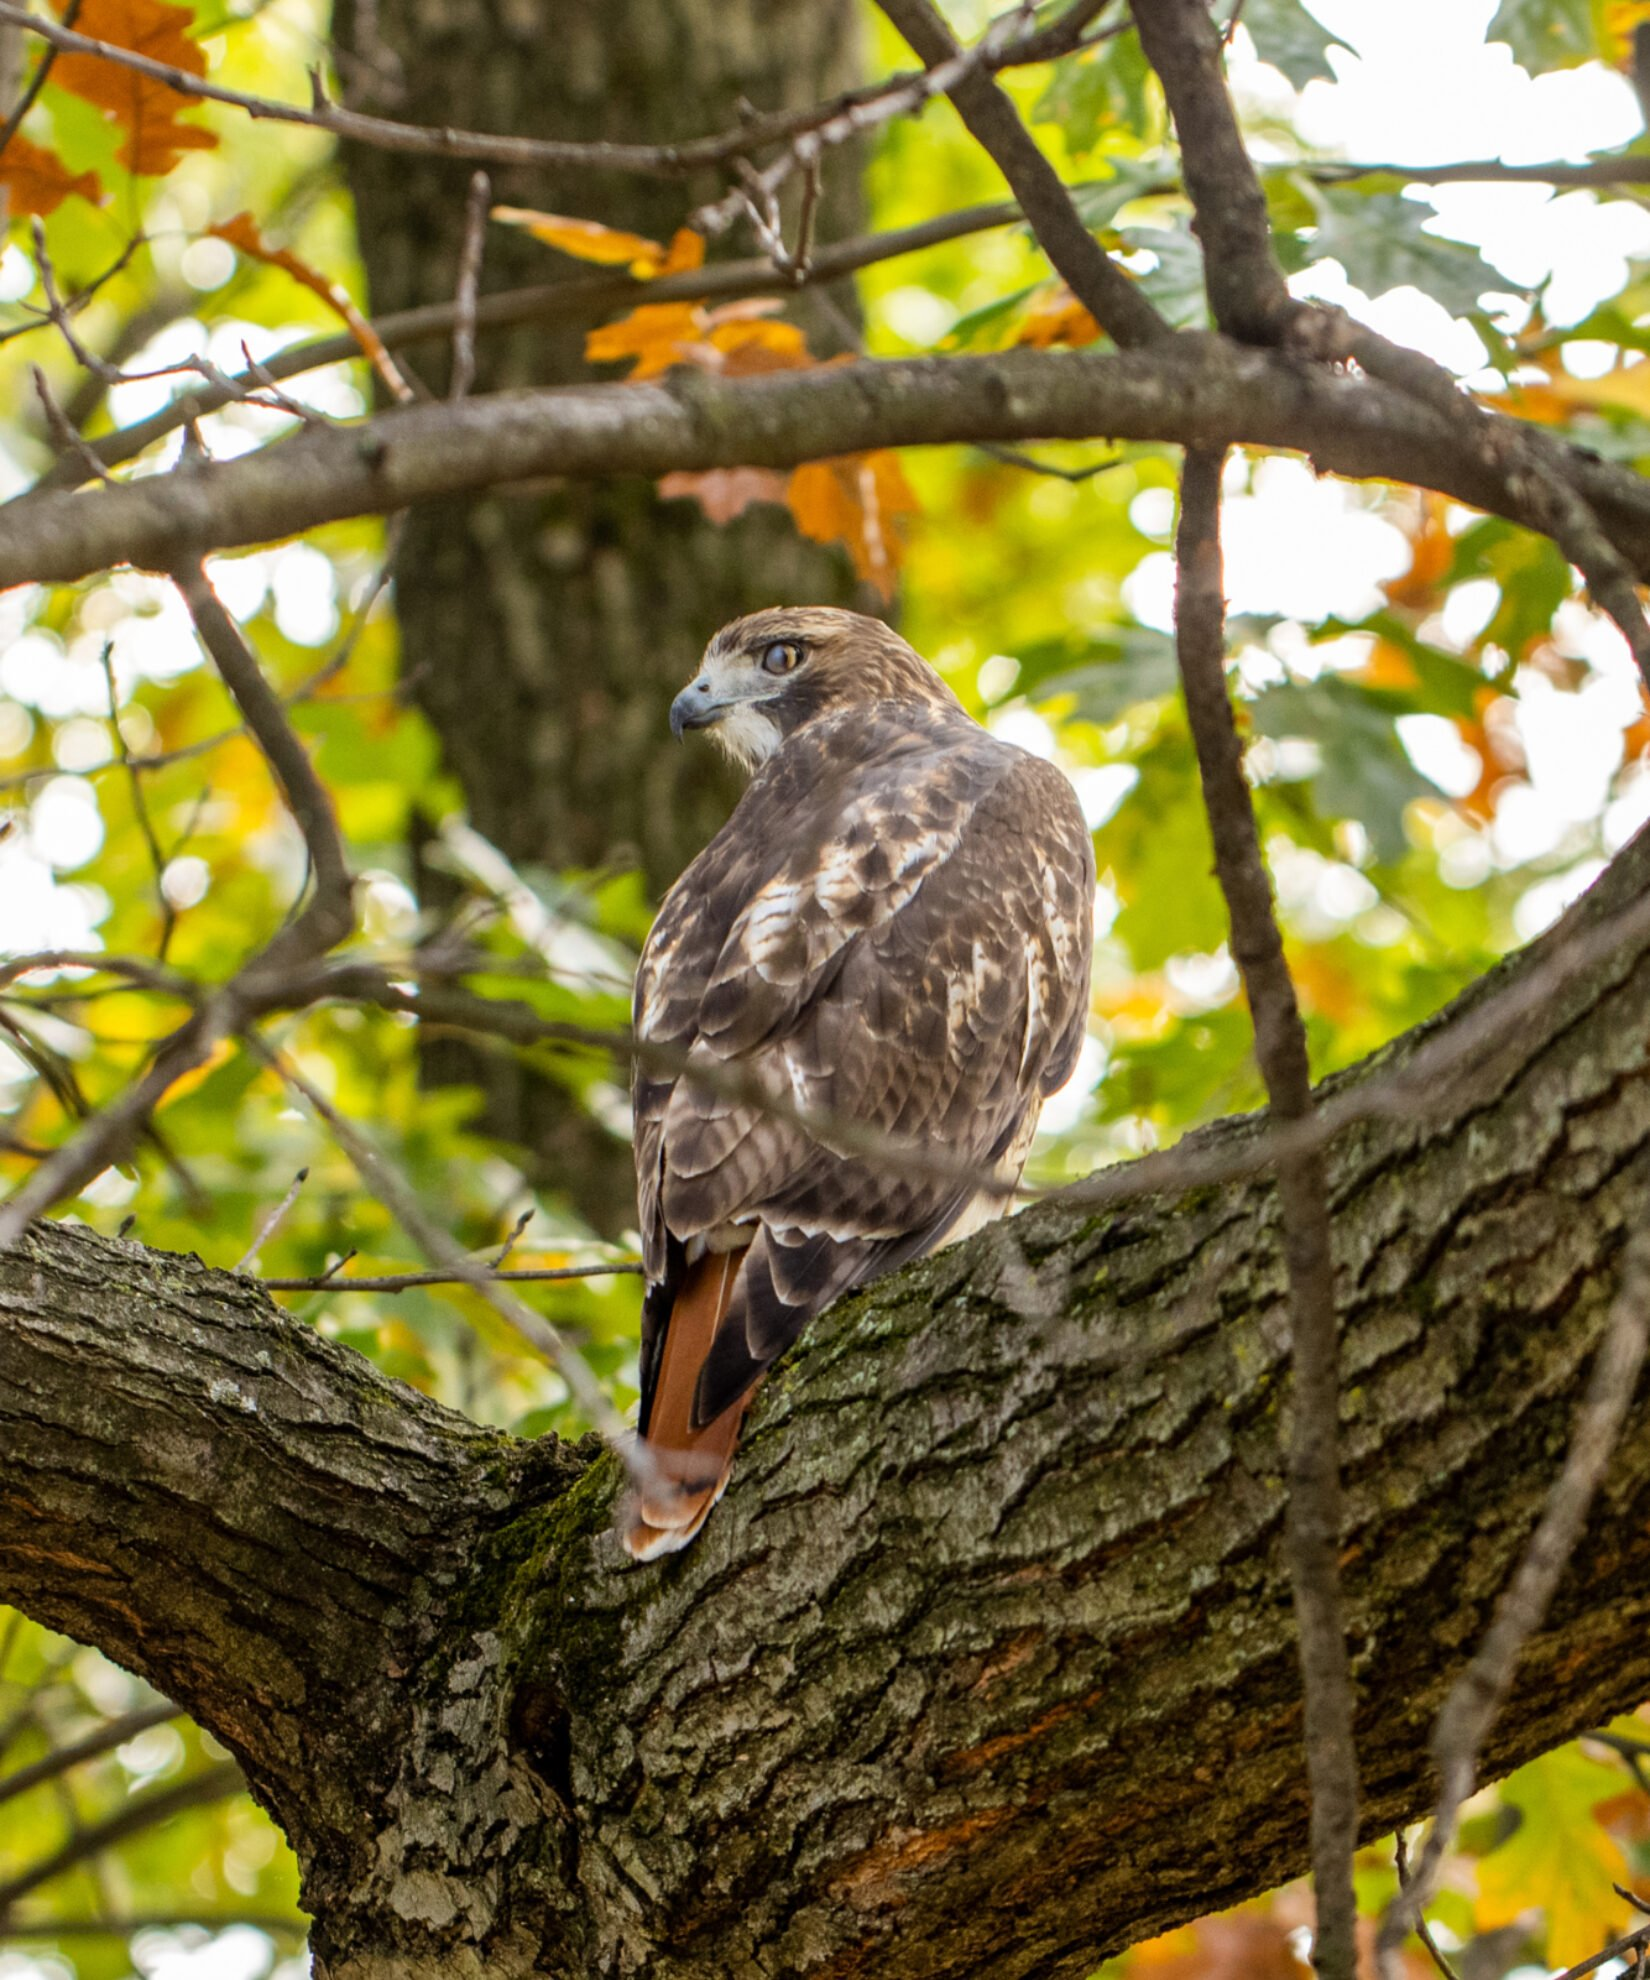 The noble bird perched on a branch in Autumn